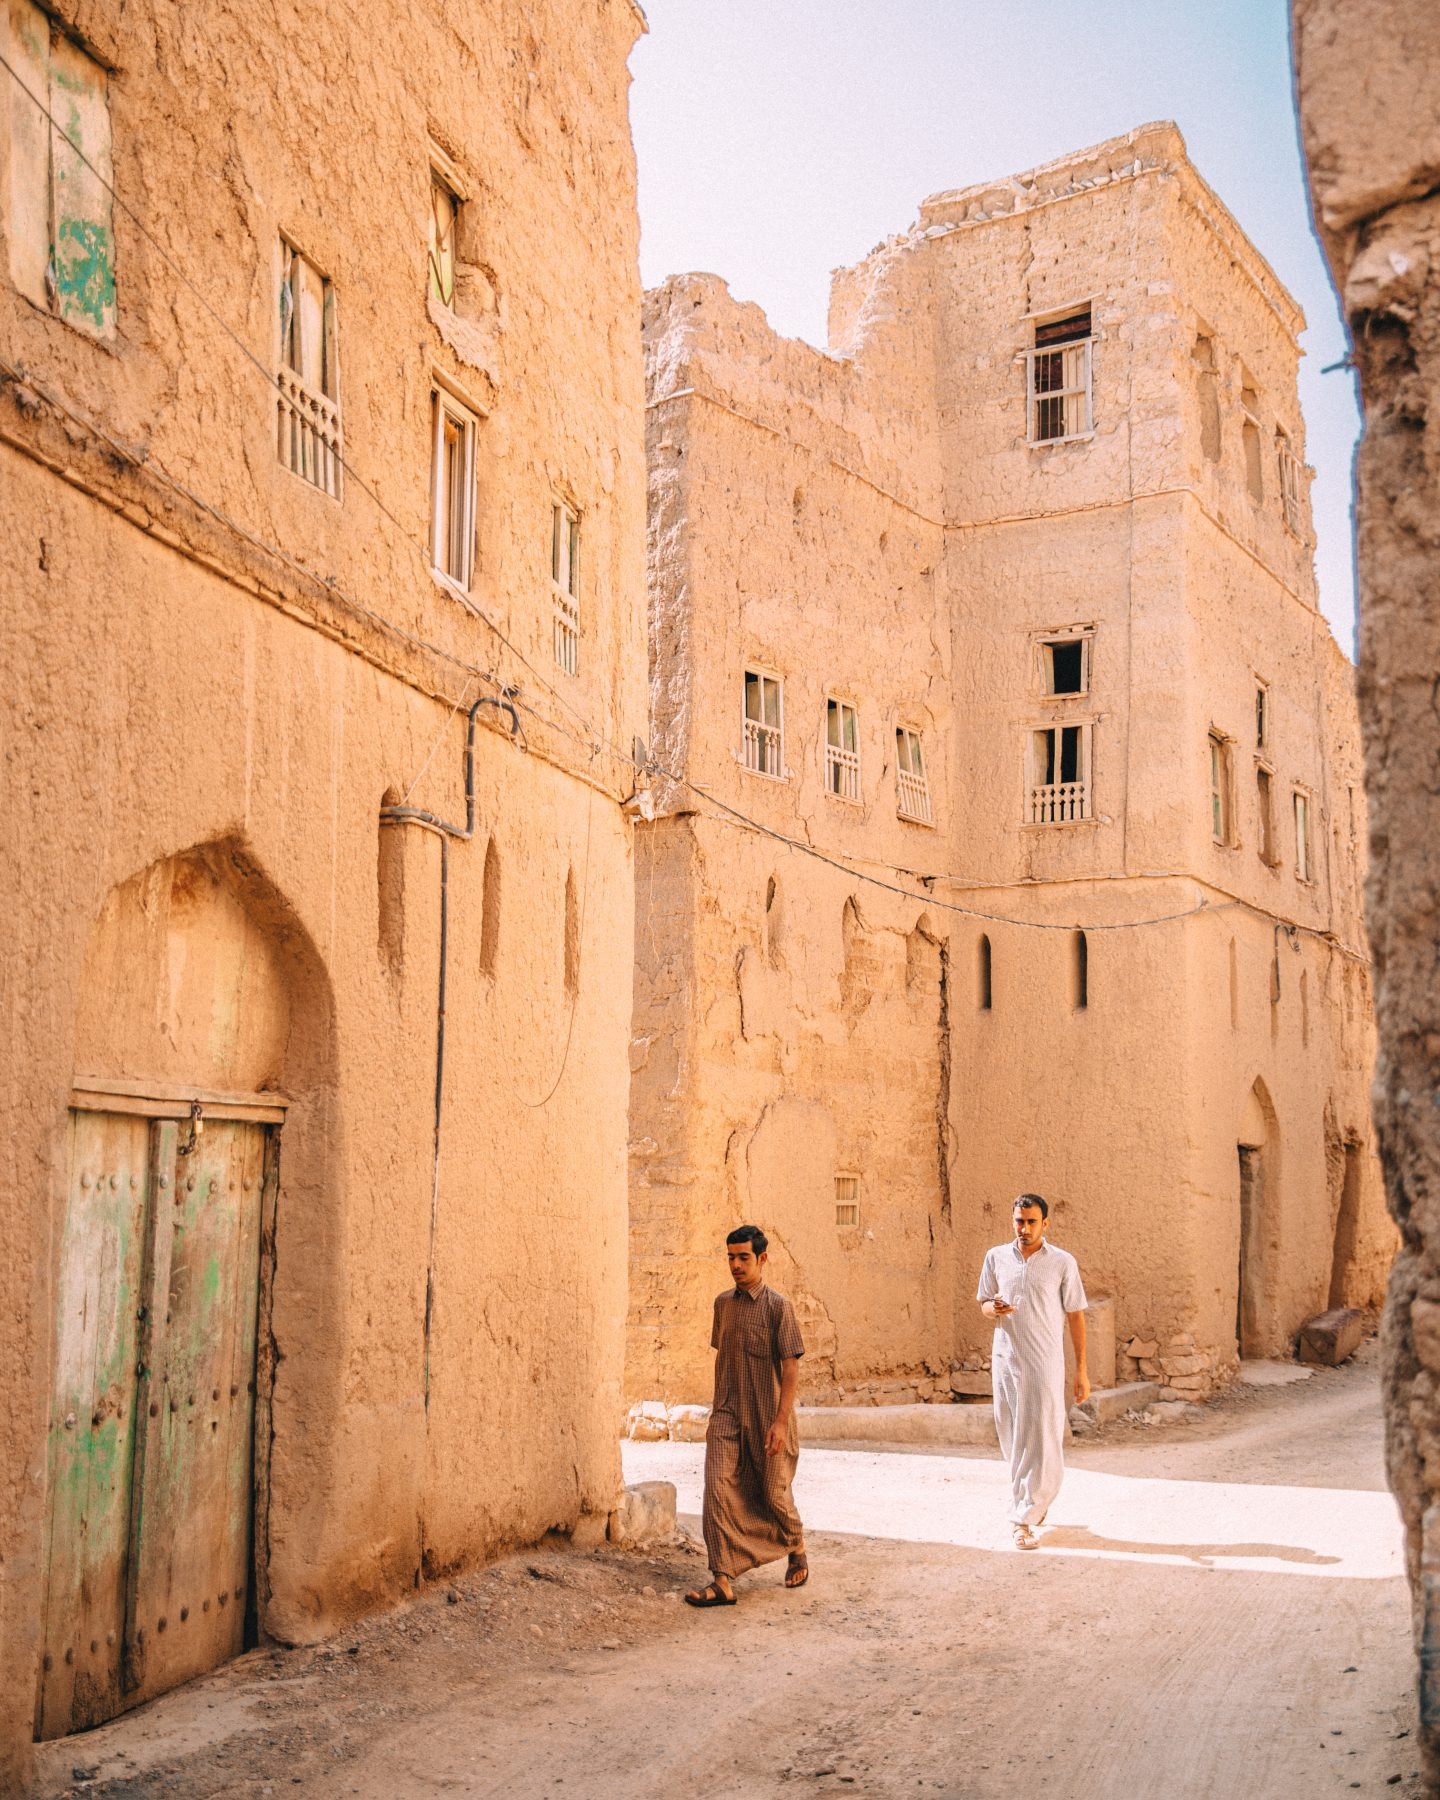 Locals in Al Hamra village in Oman